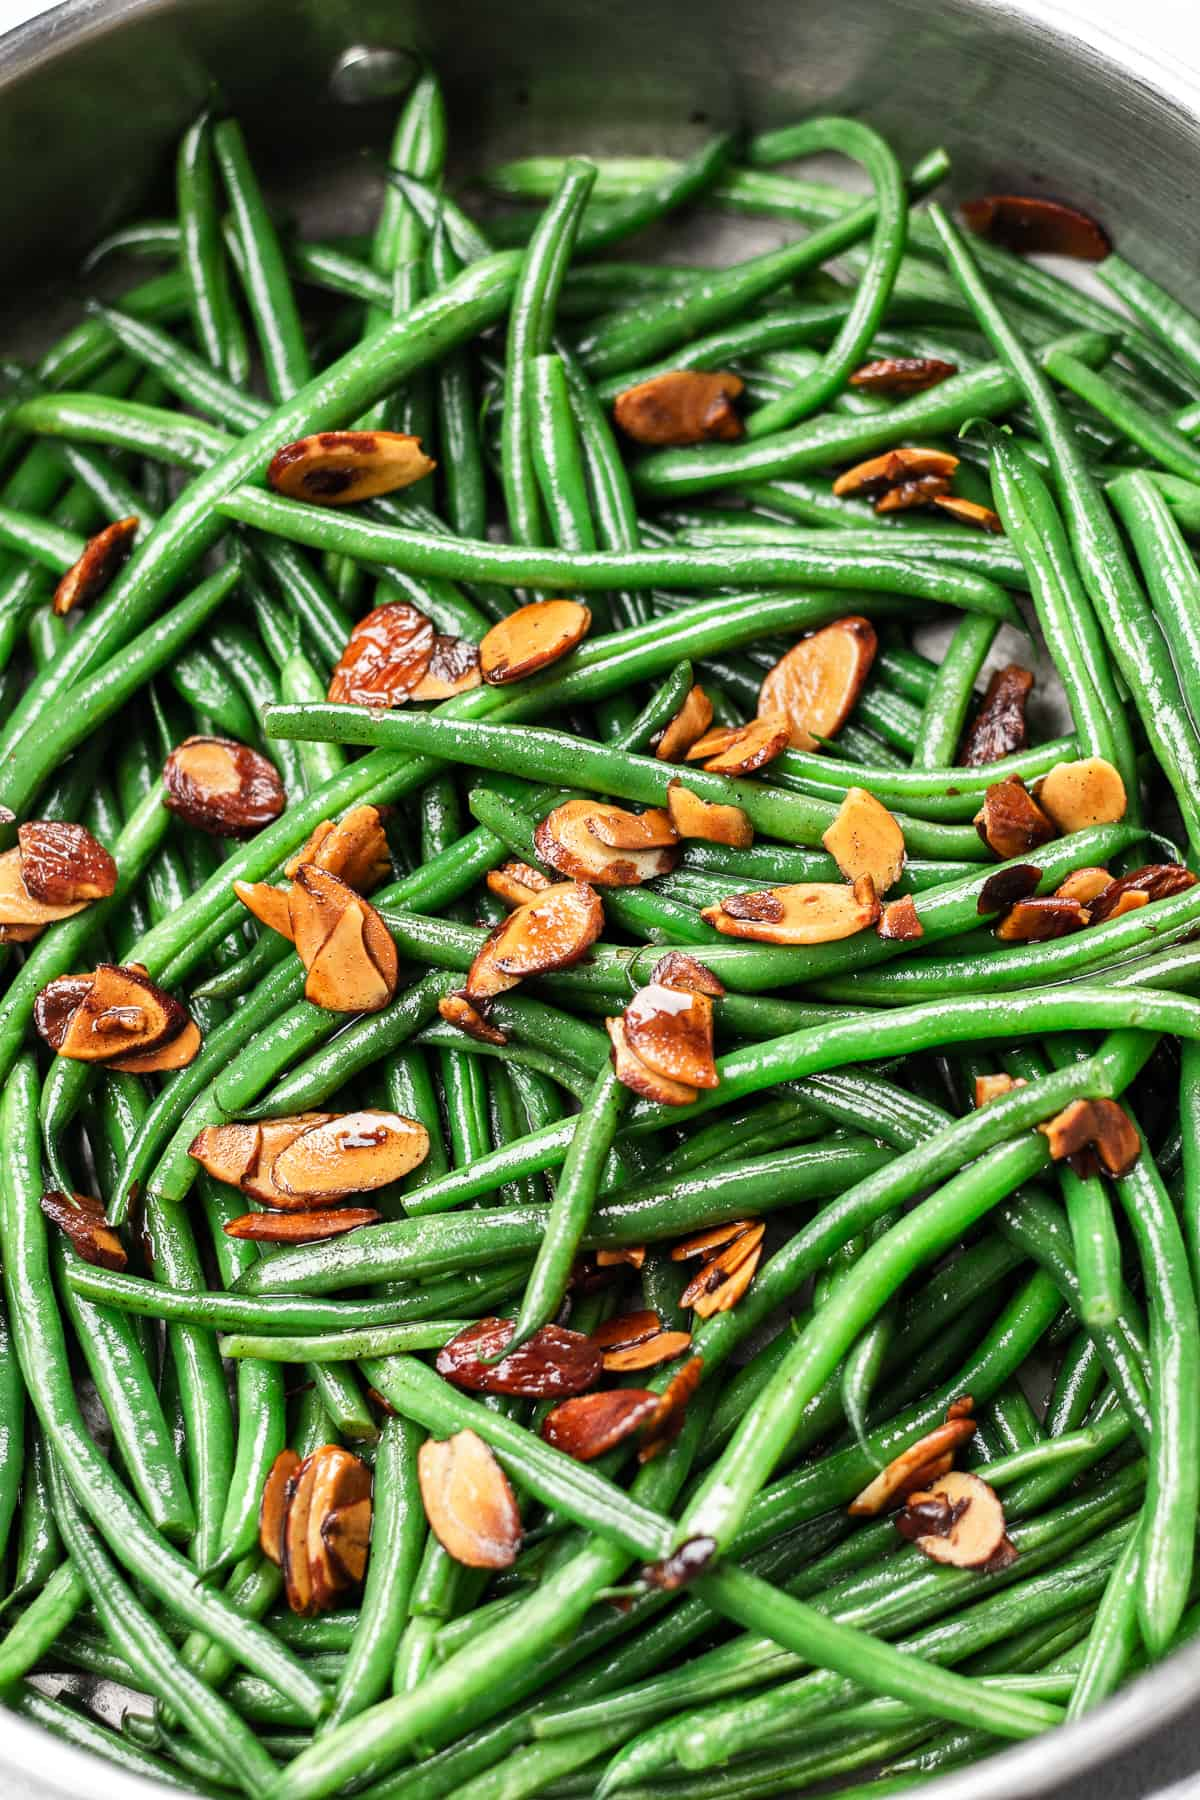 Green beans amandine topped with toasted alonds in a skillet.